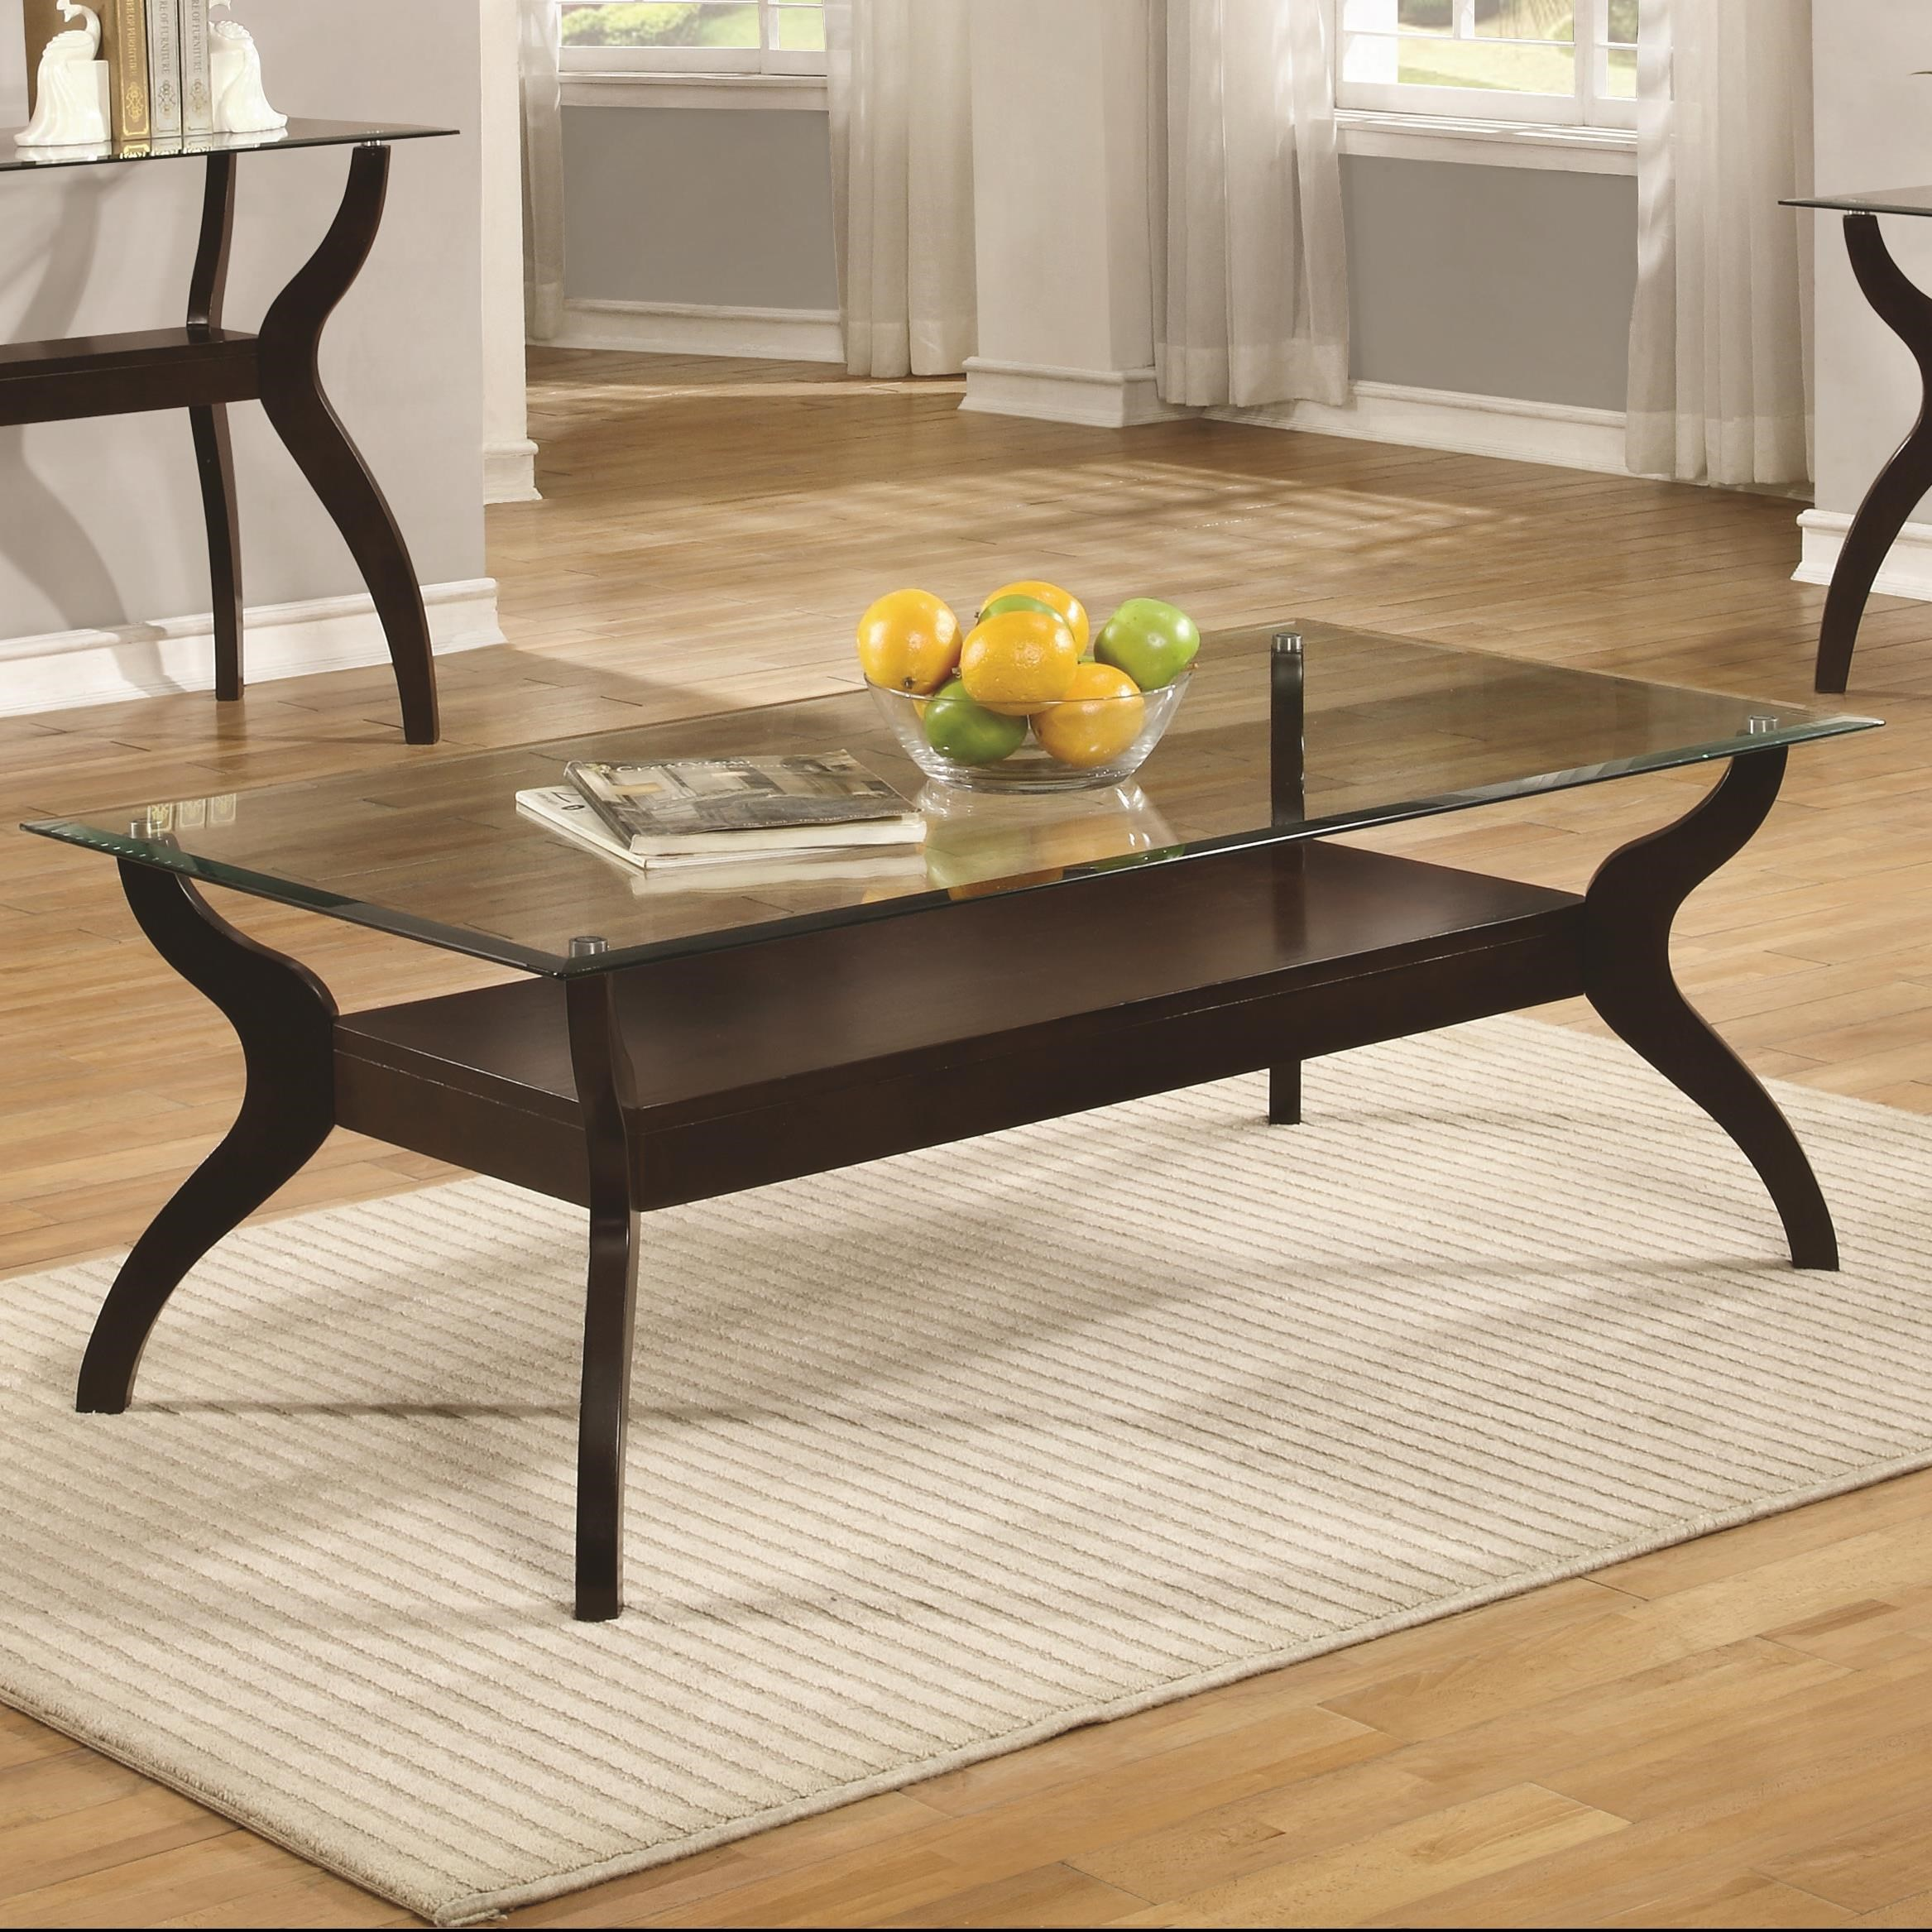 70462 Mid Century Modern Coffee Table With Glass Top By Coaster